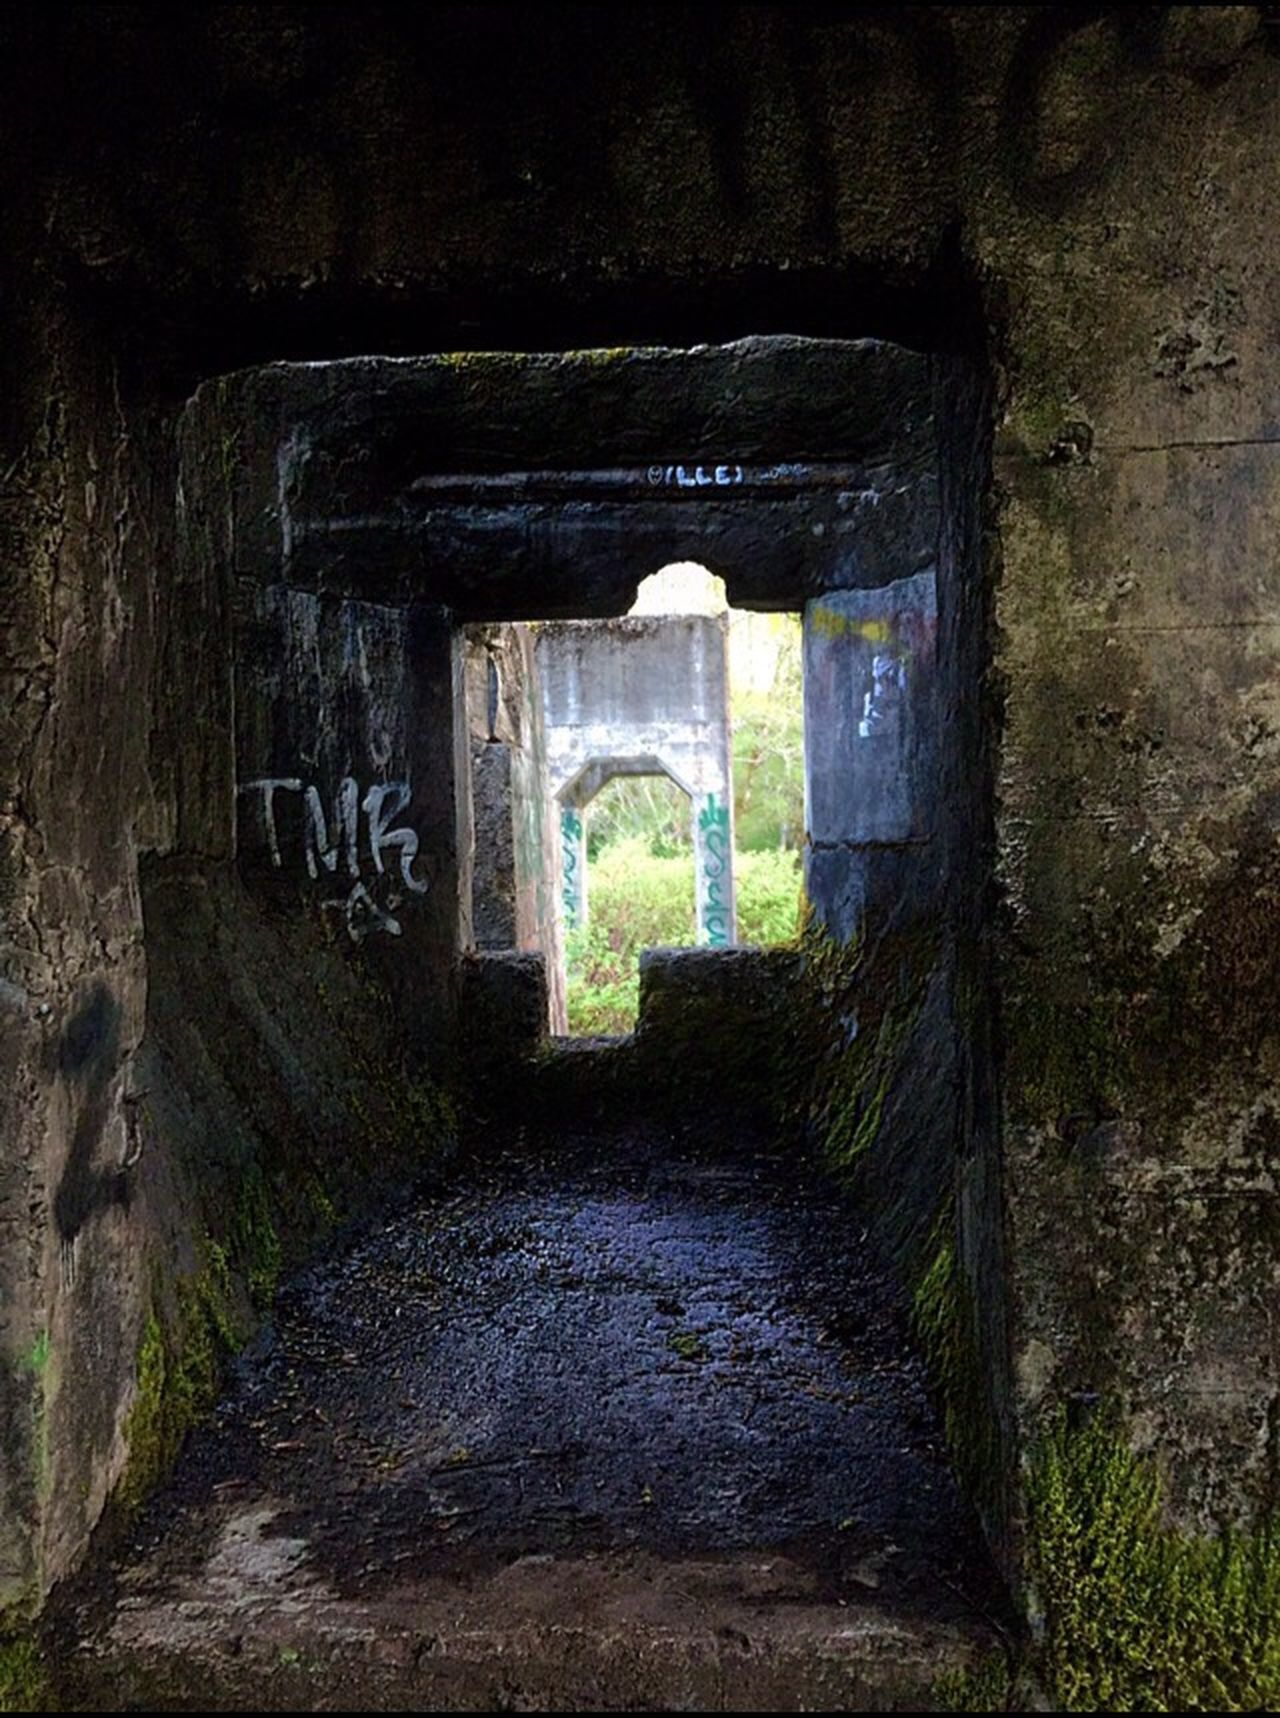 Telling Stories Differently Views Abandoned Buildings Exploring Neat Places Abandoned Atmosphere Rustic Abandoned Places Graffiti Old Abandoned Mill Showing Imperfection Abandoned & Derelict Textures And Surfaces Abstract Photography Landscape